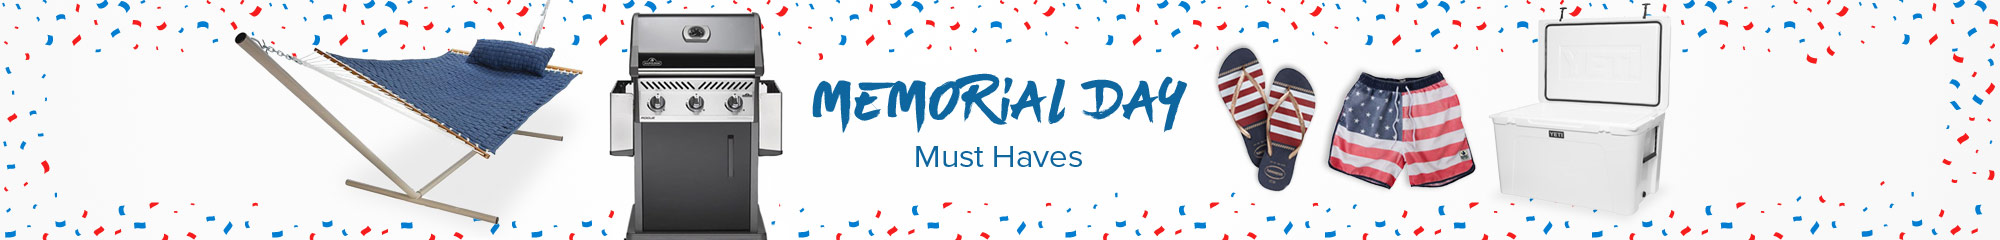 Memorial Day Must Heves